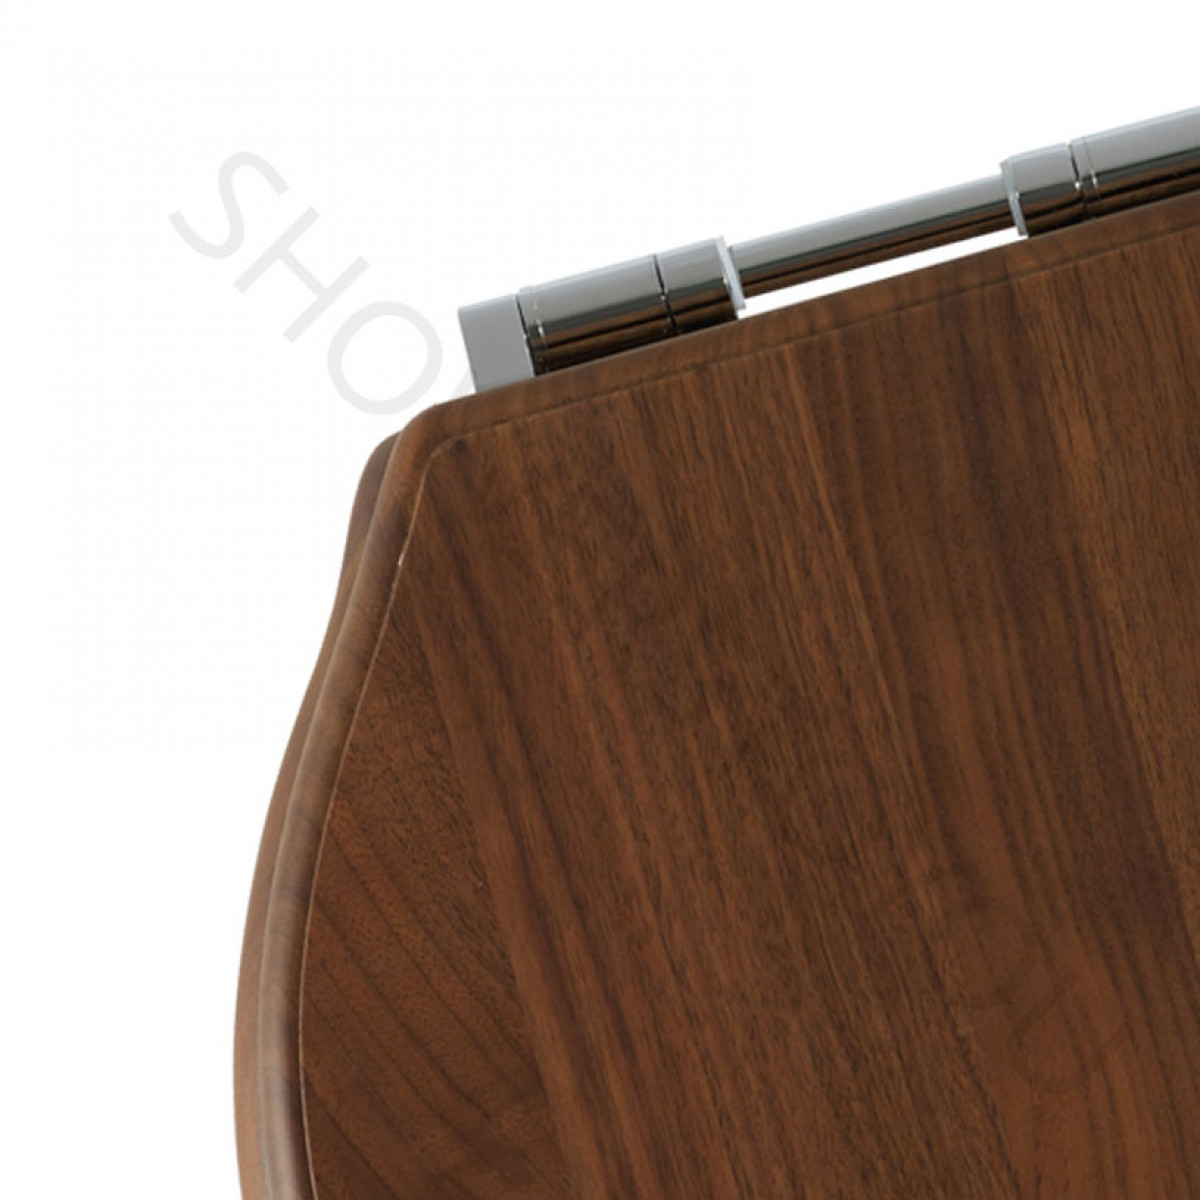 Roper Rhodes Greenwich Solid Wood Walnut Soft Close Toilet Seat  fruitesborras com 100 Wooden Images The